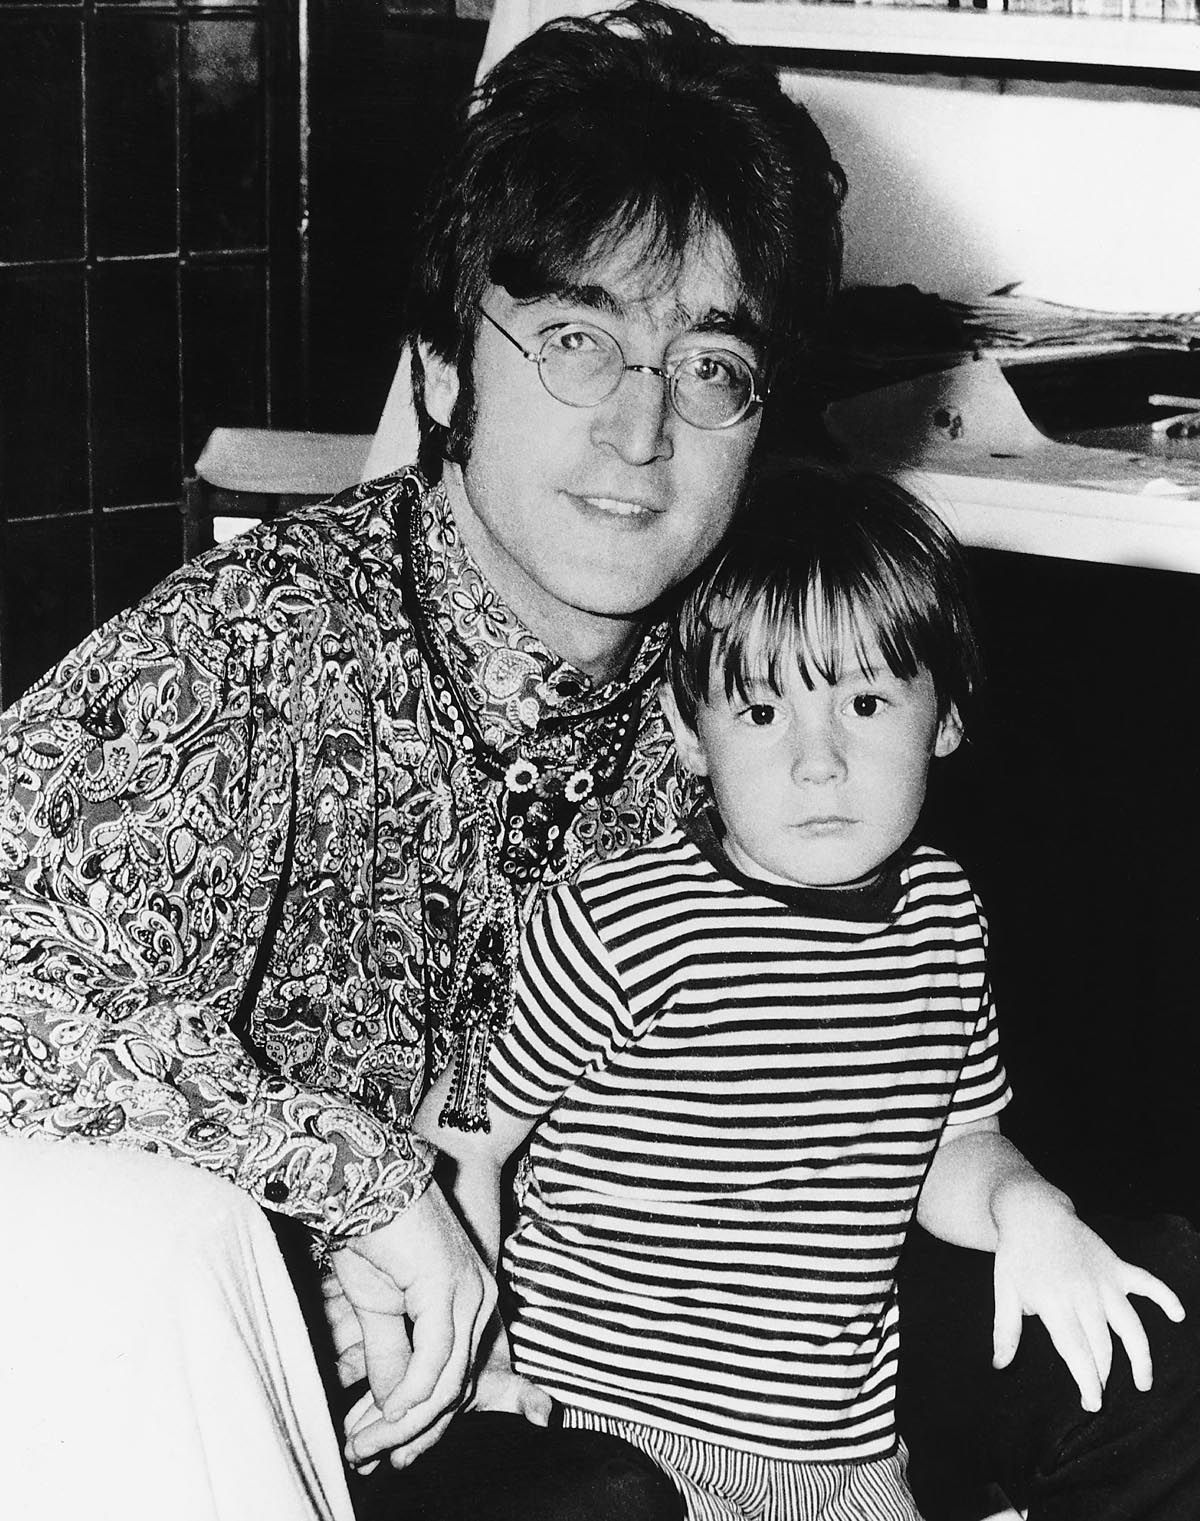 John Lennon With His Son Julian At Their Home In Weibridge 1967